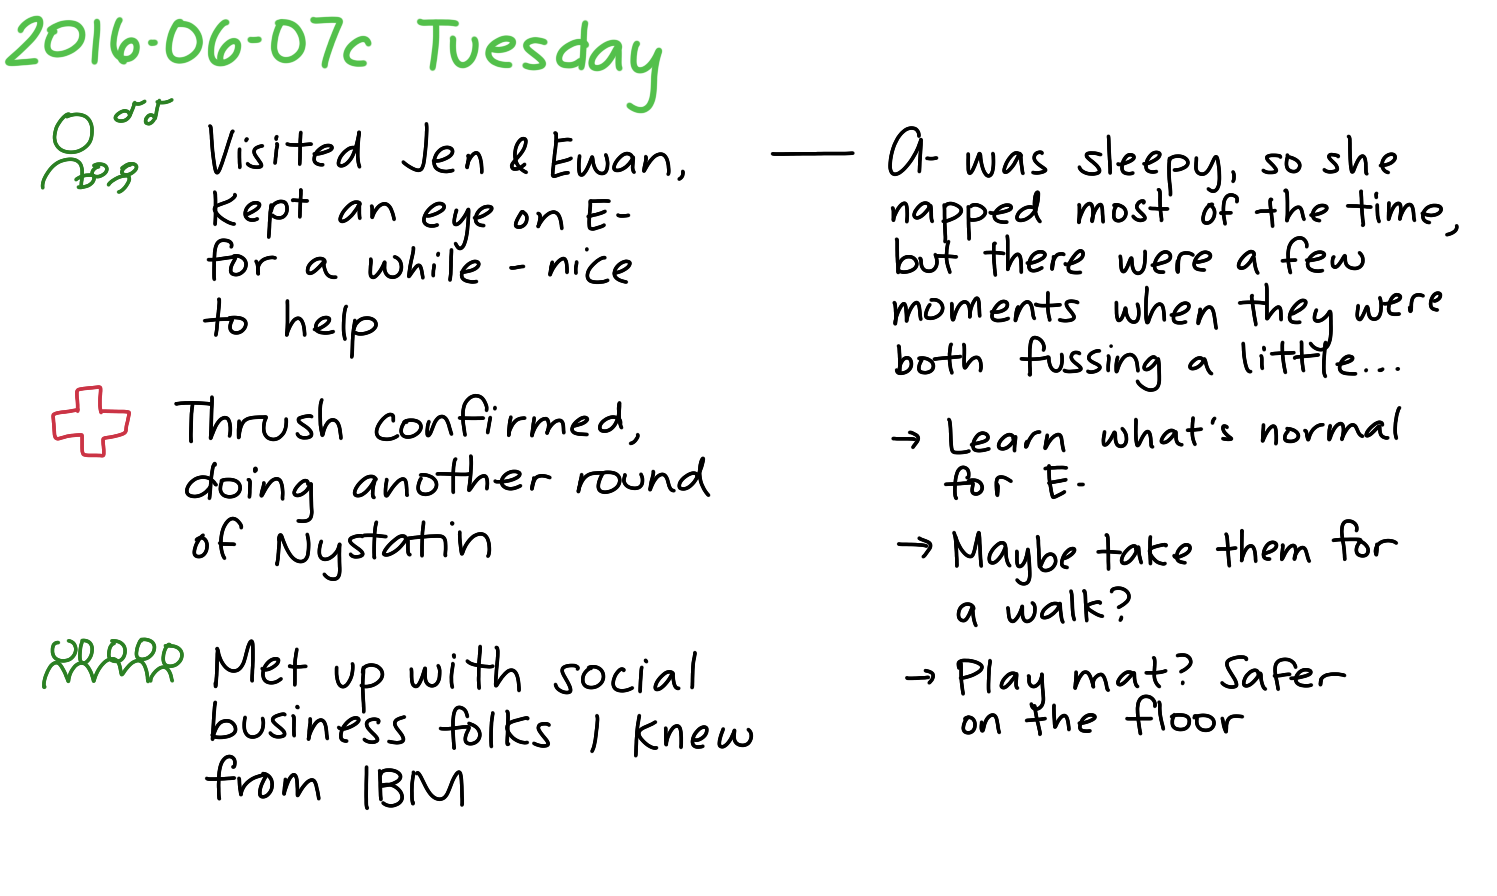 2016-06-07c Tuesday -- index card #journal.png